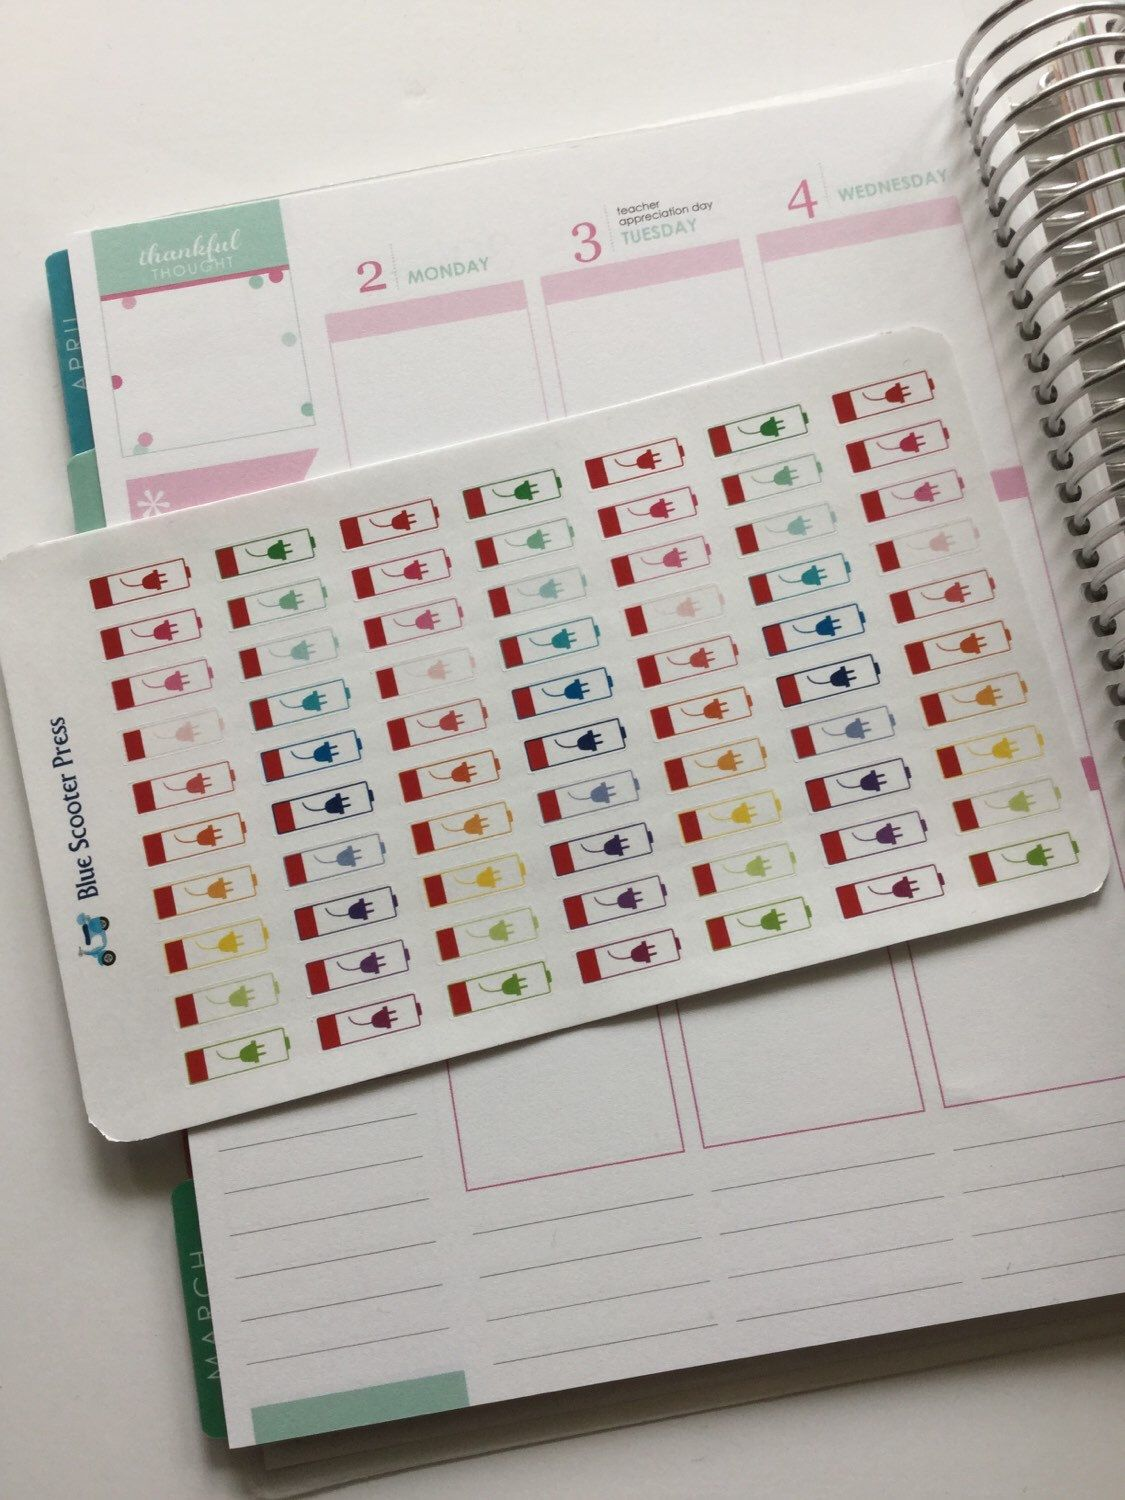 MS105M// Charging Battery Reminders! 70 MATTE Planner Stickers. by BlueScooterPress on Etsy https://www.etsy.com/listing/287598205/ms105m-charging-battery-reminders-70